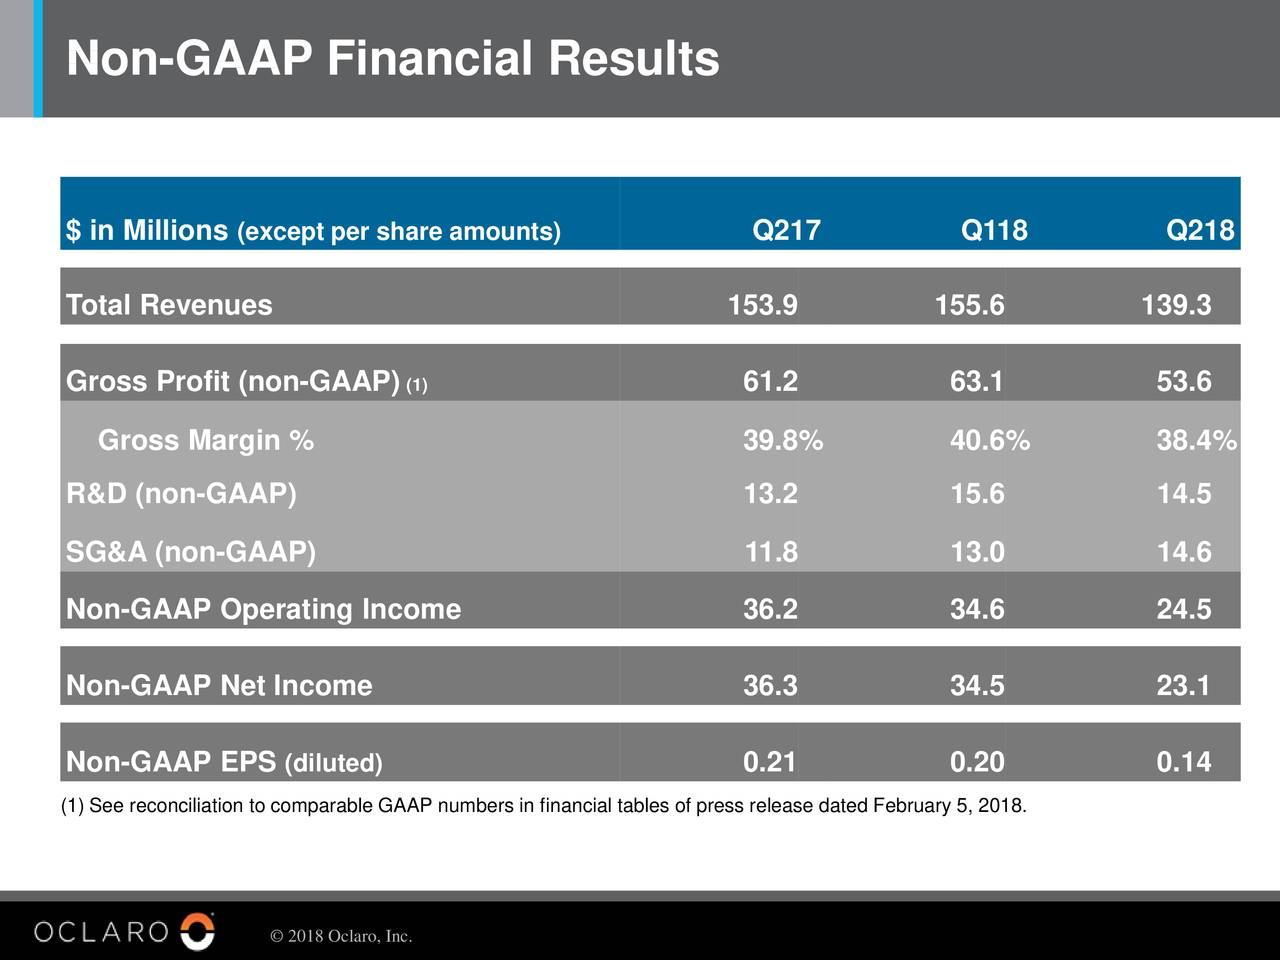 $ in Millions(except per share amounts) Q217 Q118 Q218 Total Revenues 153.9 155.6 139.3 Gross Profit (non-GAAP) (1) 61.2 63.1 53.6 Gross Margin % 39.8% 40.6% 38.4% R&D (non-GAAP) 13.2 15.6 14.5 SG&A (non-GAAP) 11.8 13.0 14.6 Non-GAAP Operating Income 36.2 34.6 24.5 Non-GAAP Net Income 36.3 34.5 23.1 Non-GAAP EPS (diluted) 0.21 0.20 0.14 (1) See reconciliation to comparable GAAP numbers in financial tables of press release dated February 5, 2018. © 2018 Oclaro, Inc.